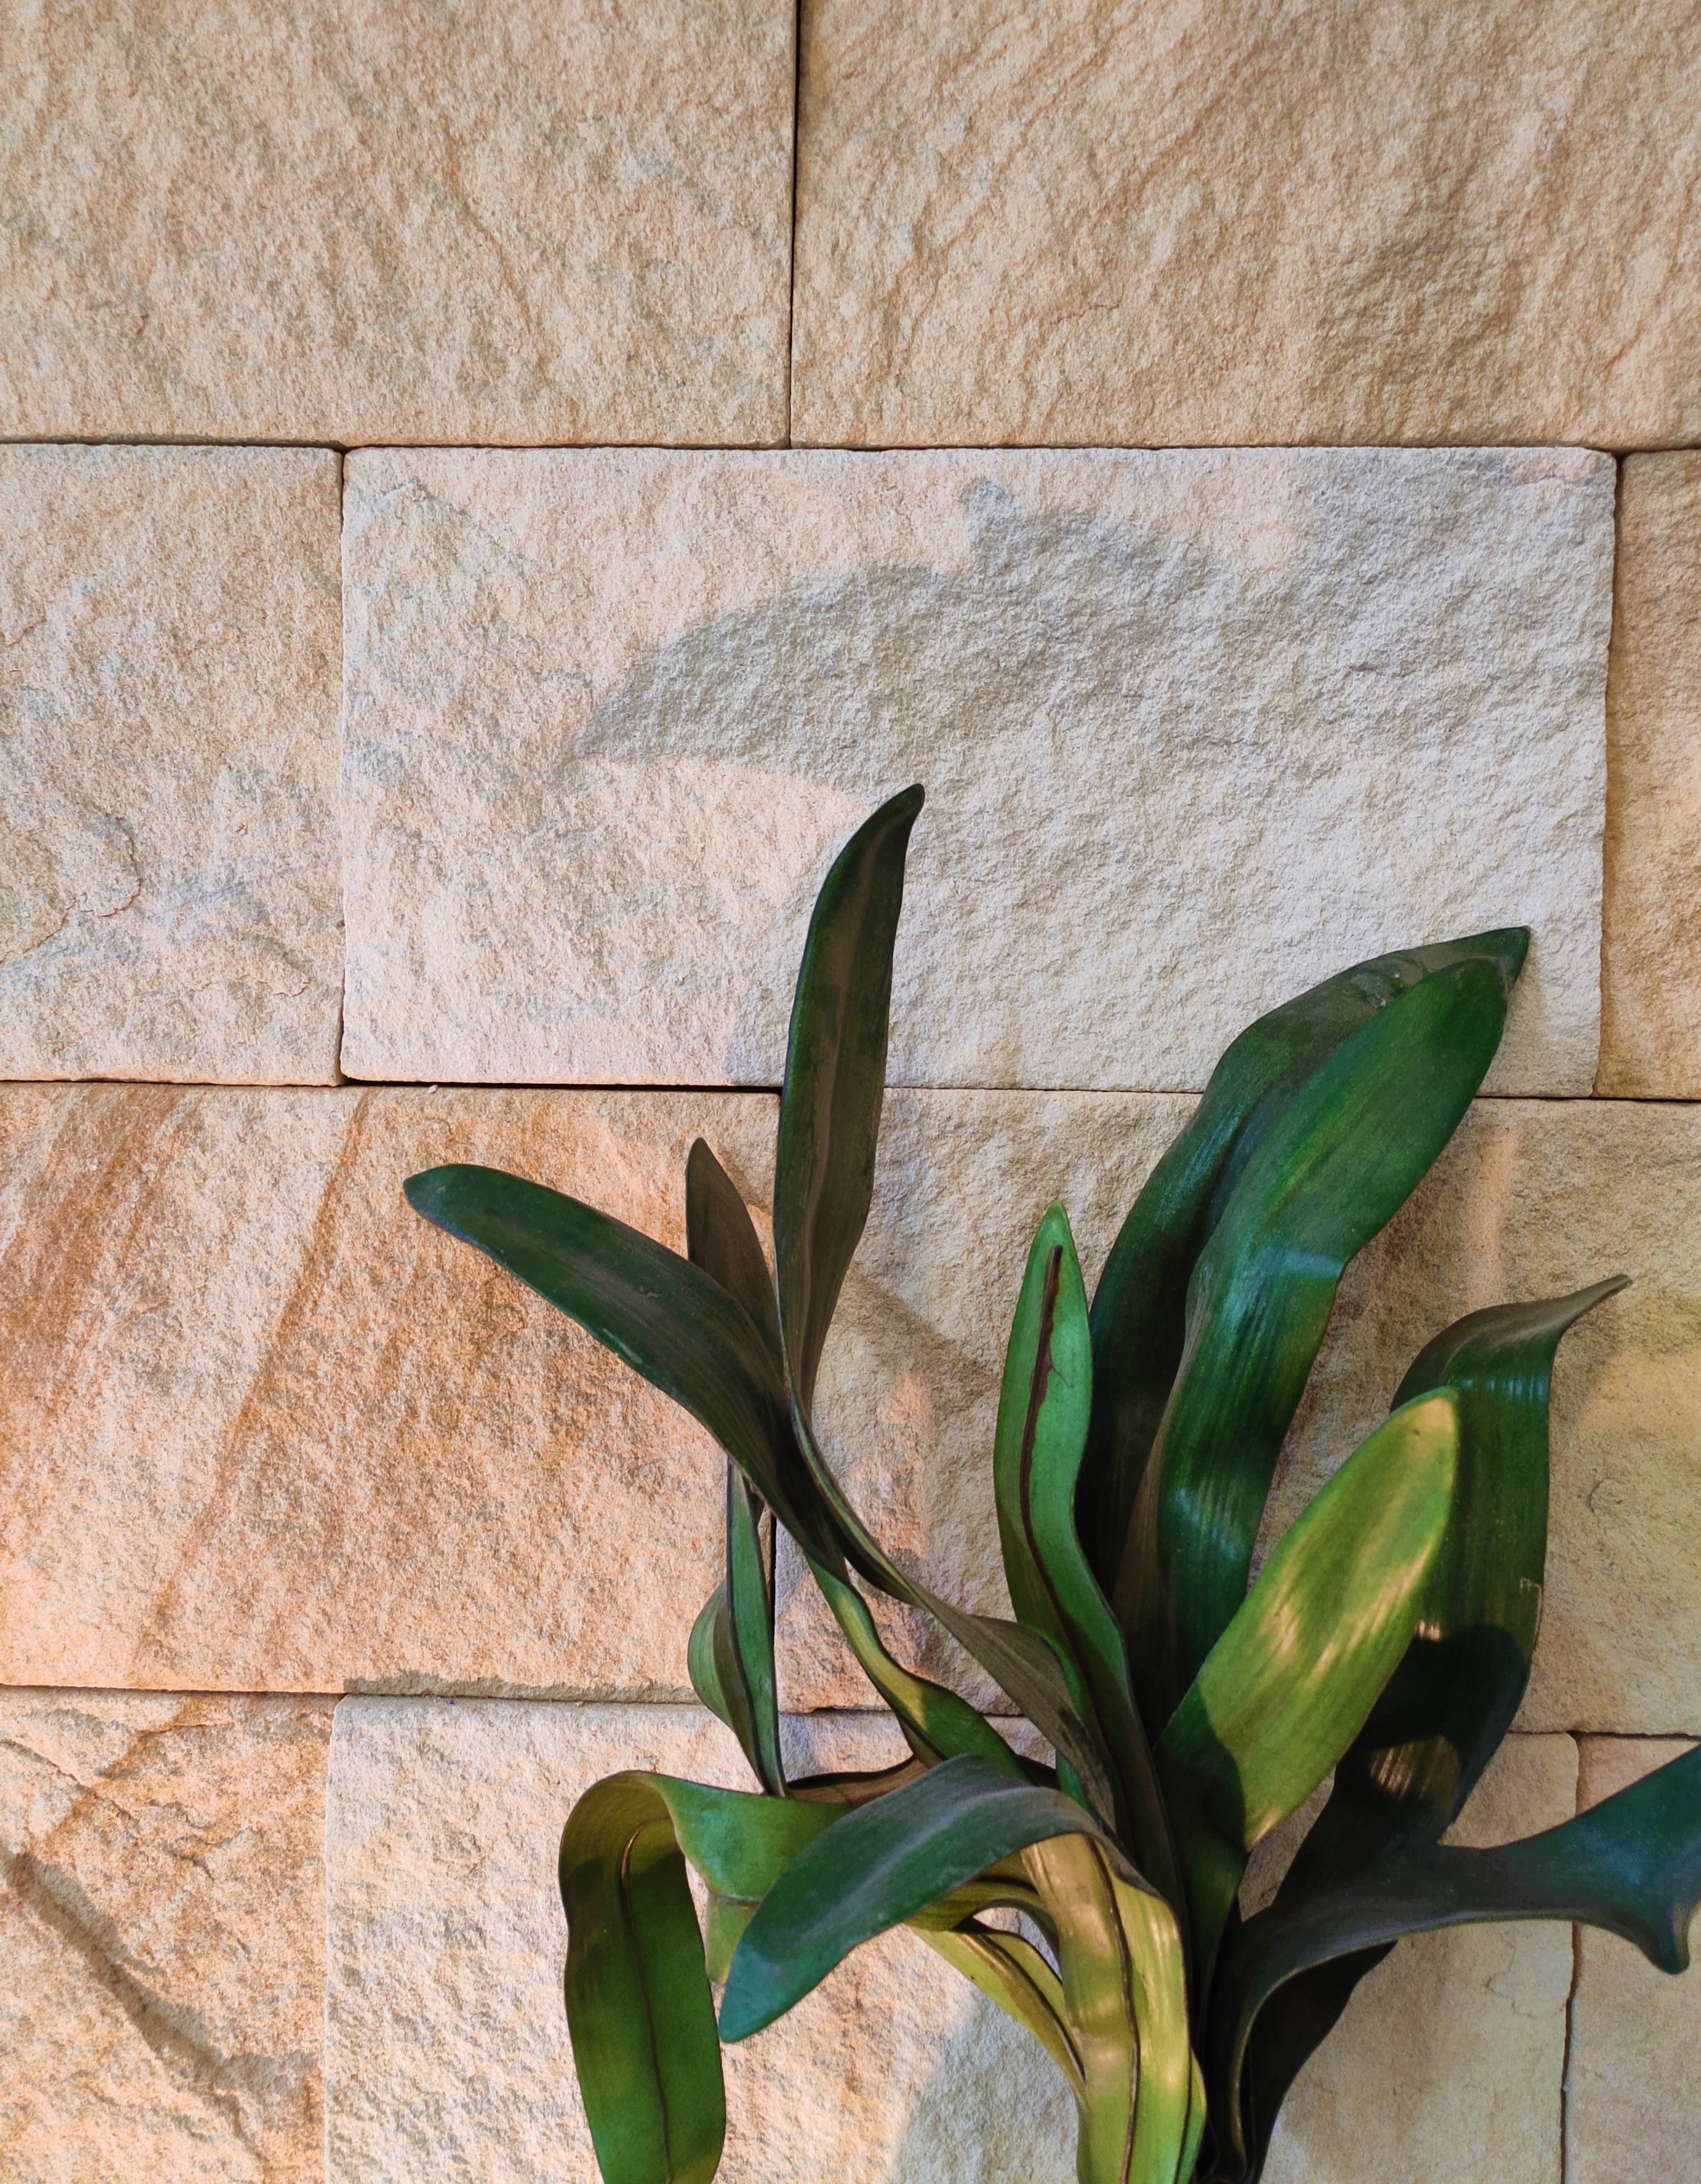 Kirra banded walling sandstone cladding with a green plant